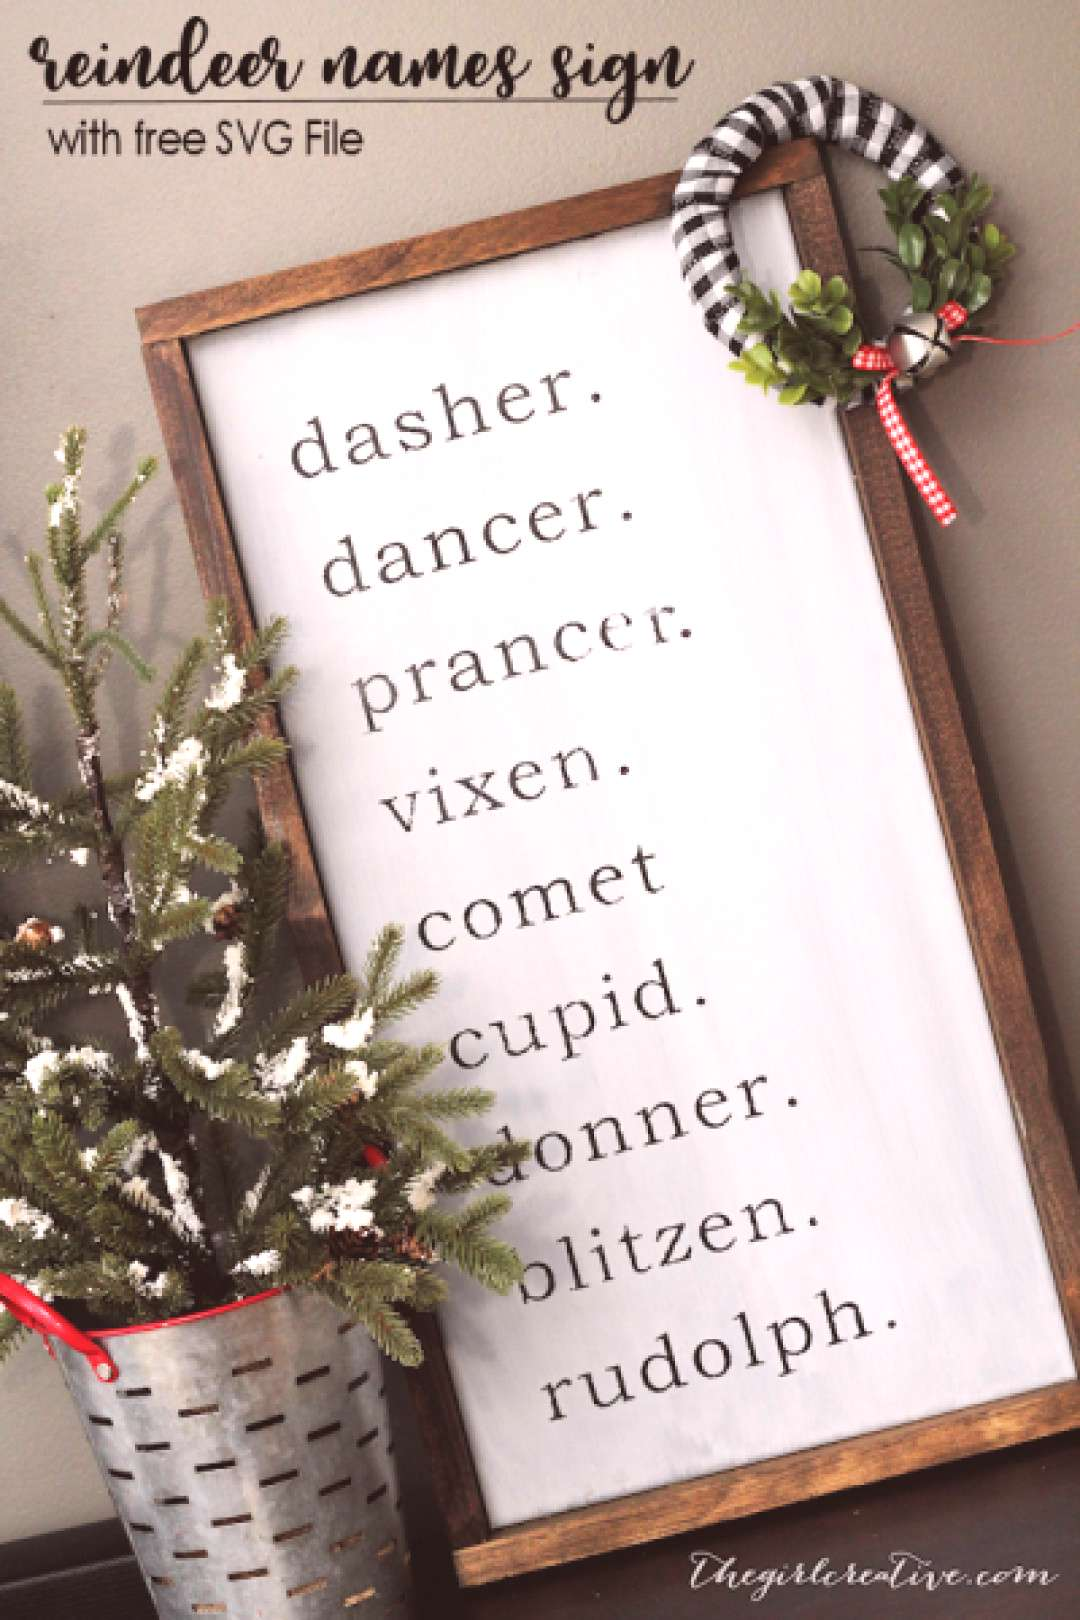 DIY Farmhouse Christmas Signs that are Fabulous amp Fun! Looking to add a touch of Farmhouse to your